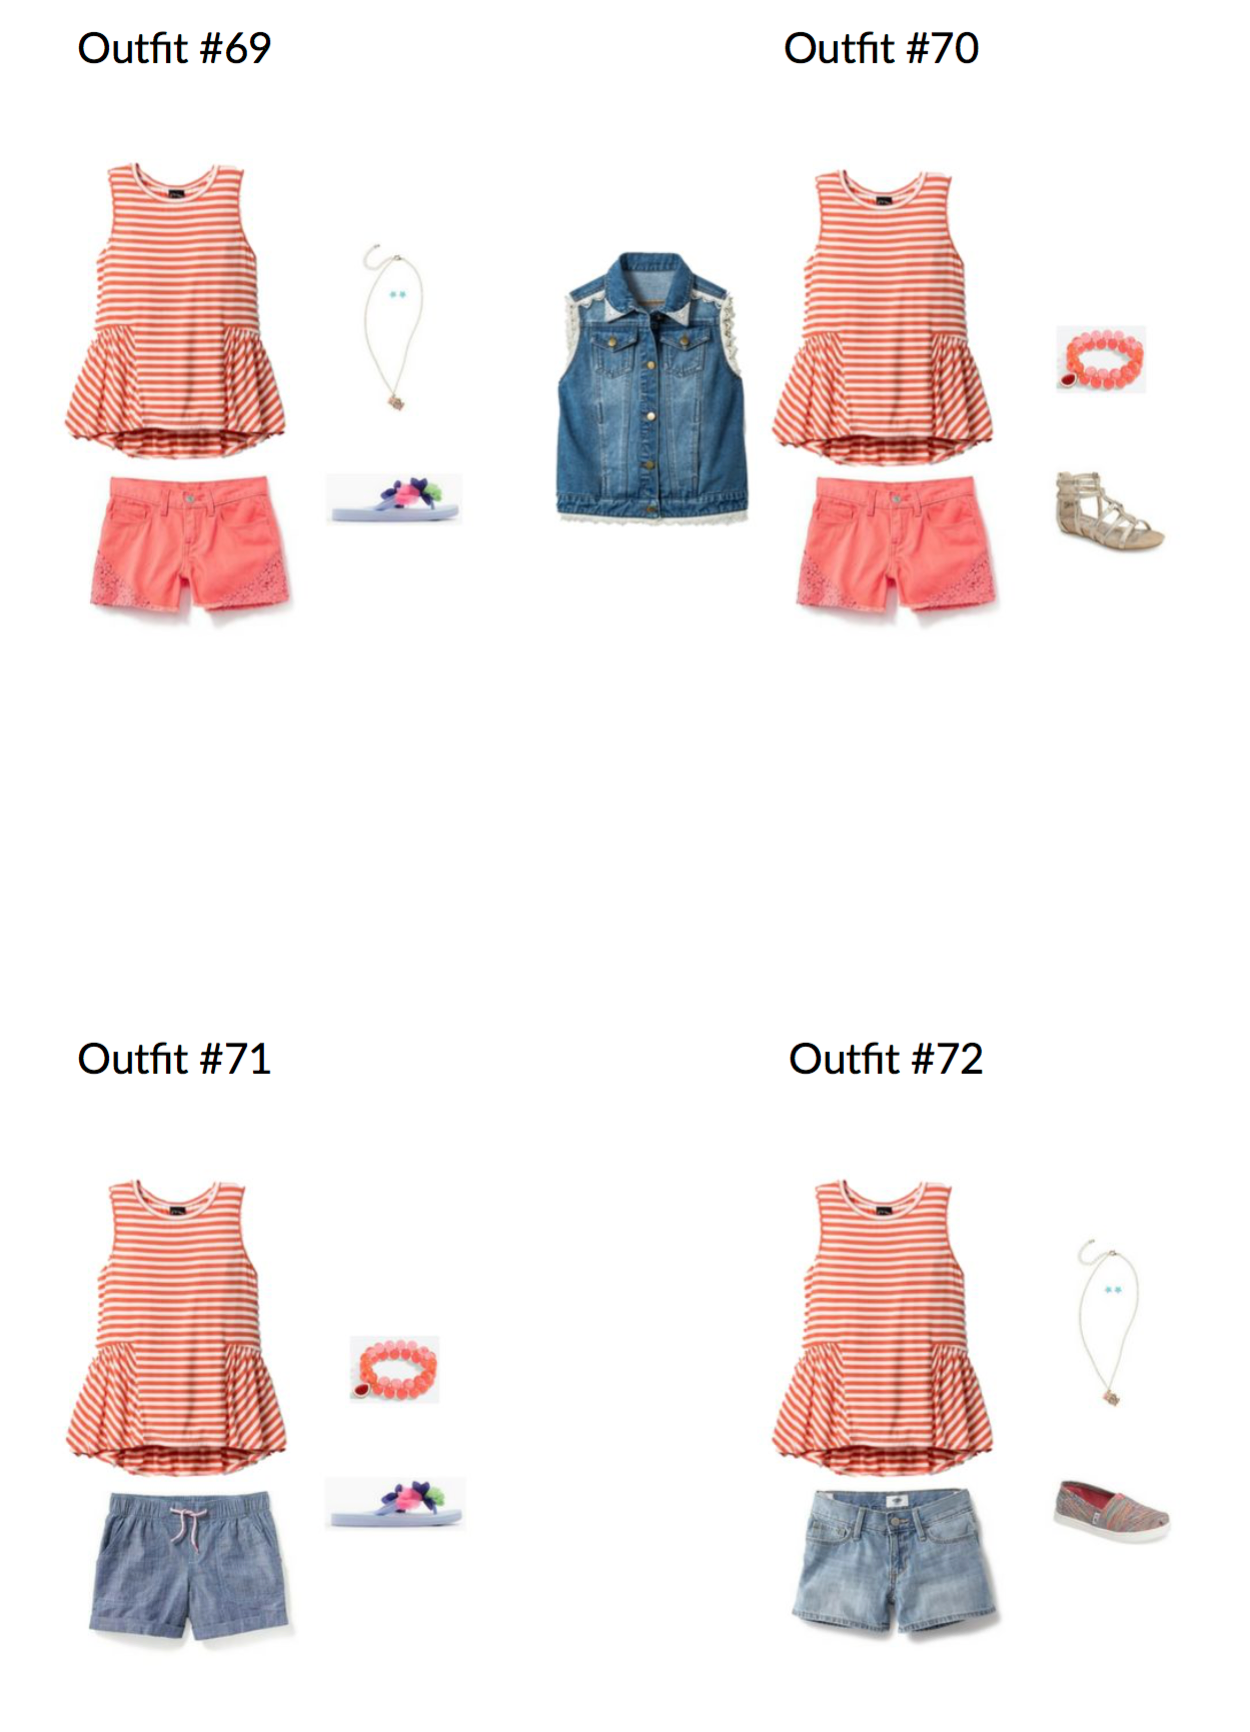 The Girl's Capsule Wardrobe: Summer 2017 Collection Page Example